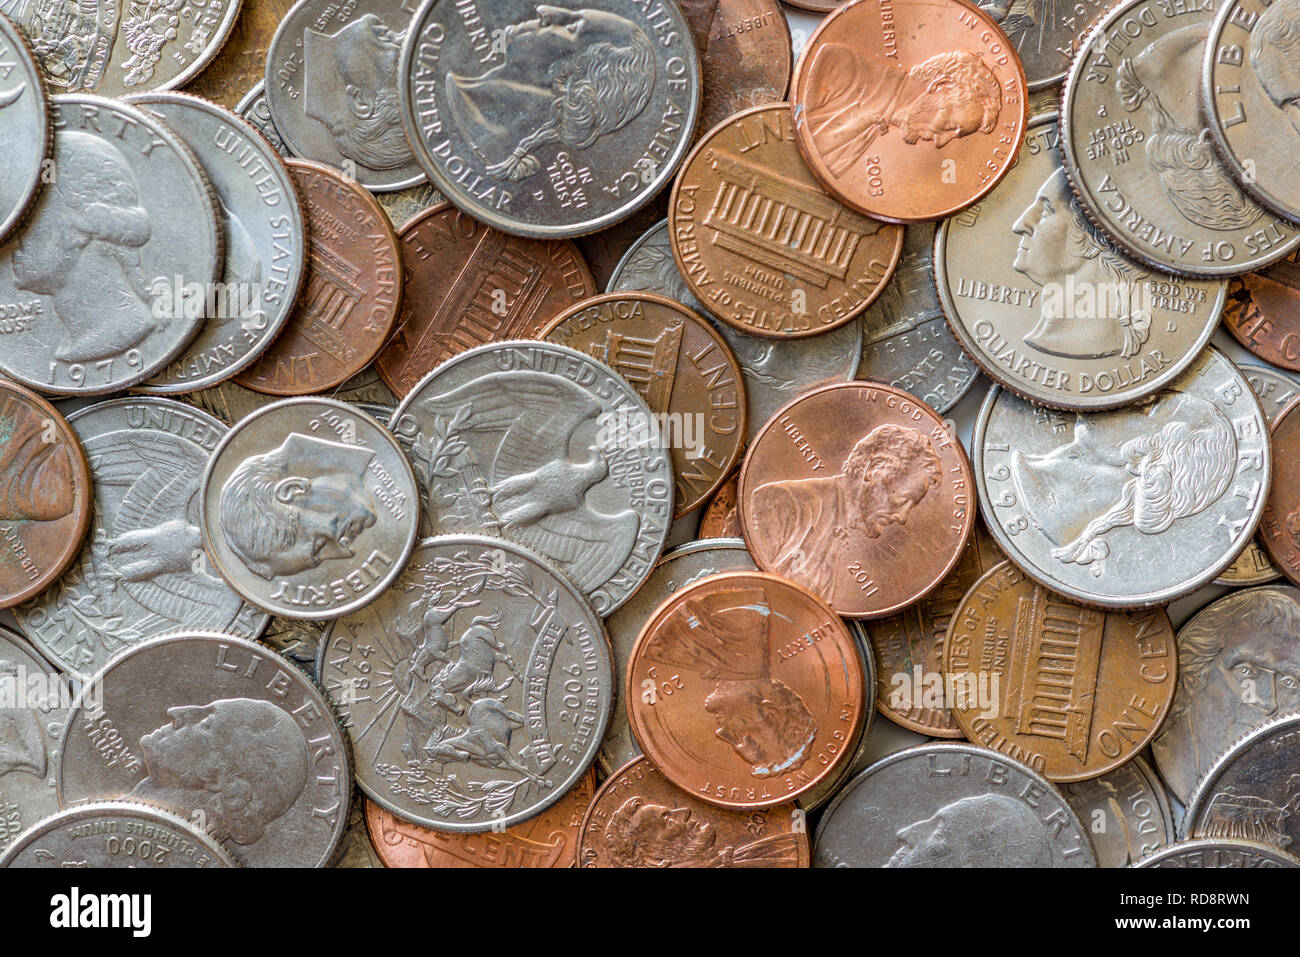 Close-up of a one cent, 10 cent and a quarter coins - Stock Image